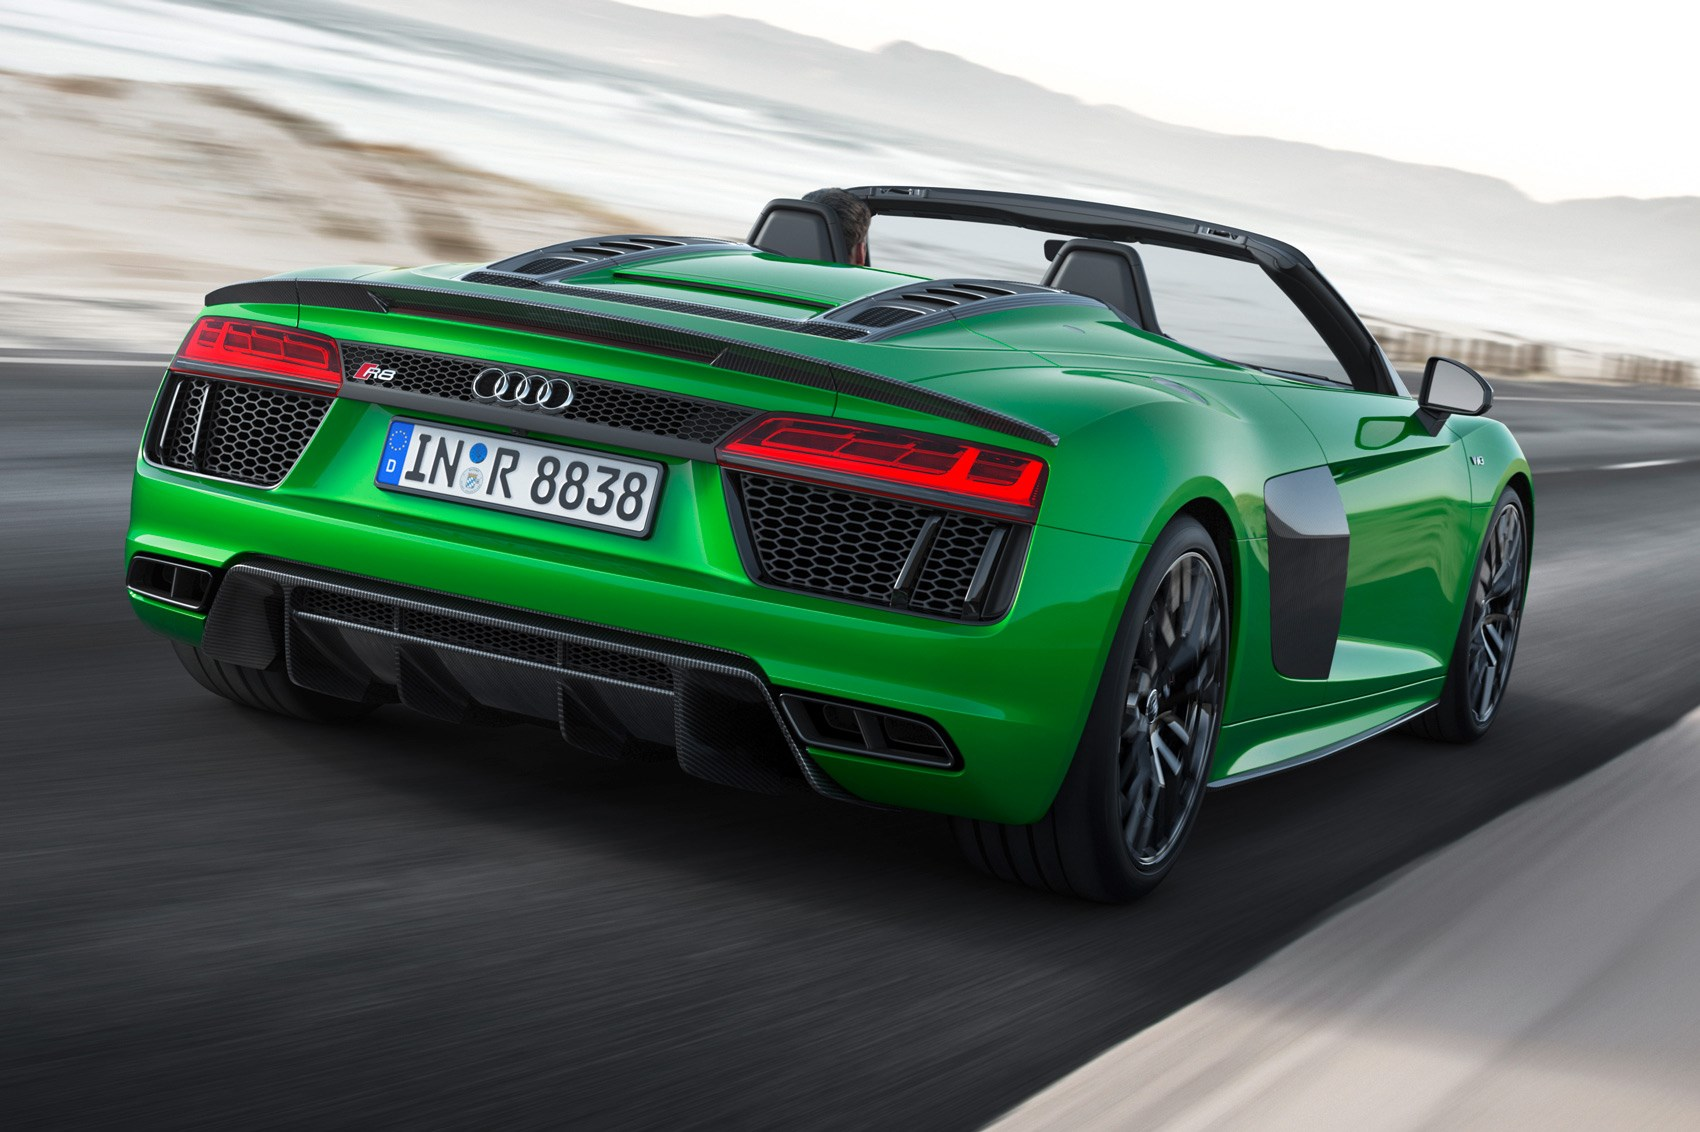 The Hulk Goes Topless New Audi R Spyder V Plus Revealed CAR - Audi r8 v10 spyder